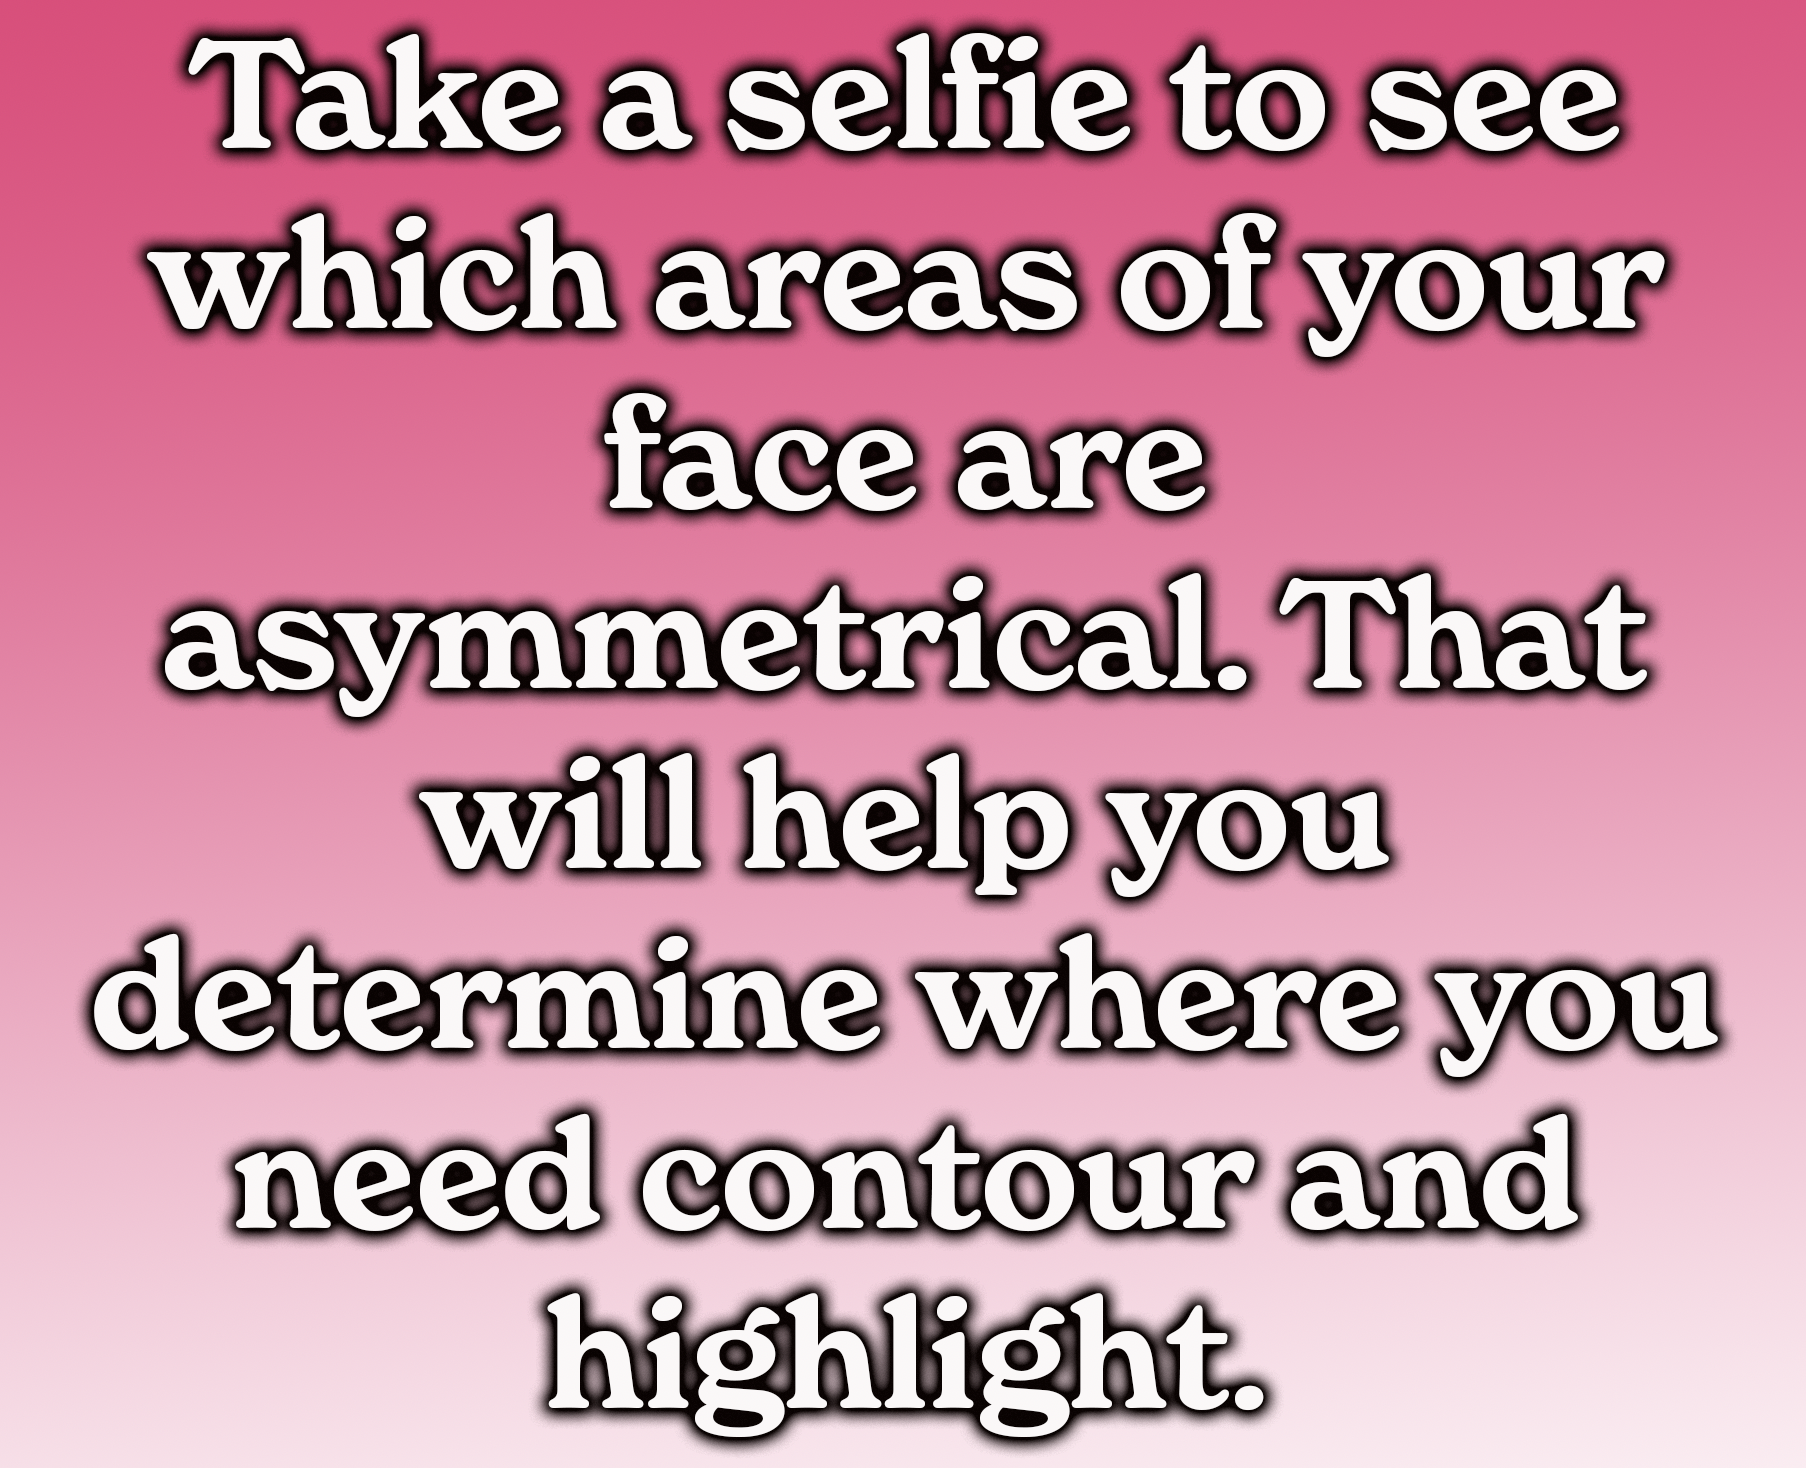 Take a selfie to see which areas of your face are asymmetrical